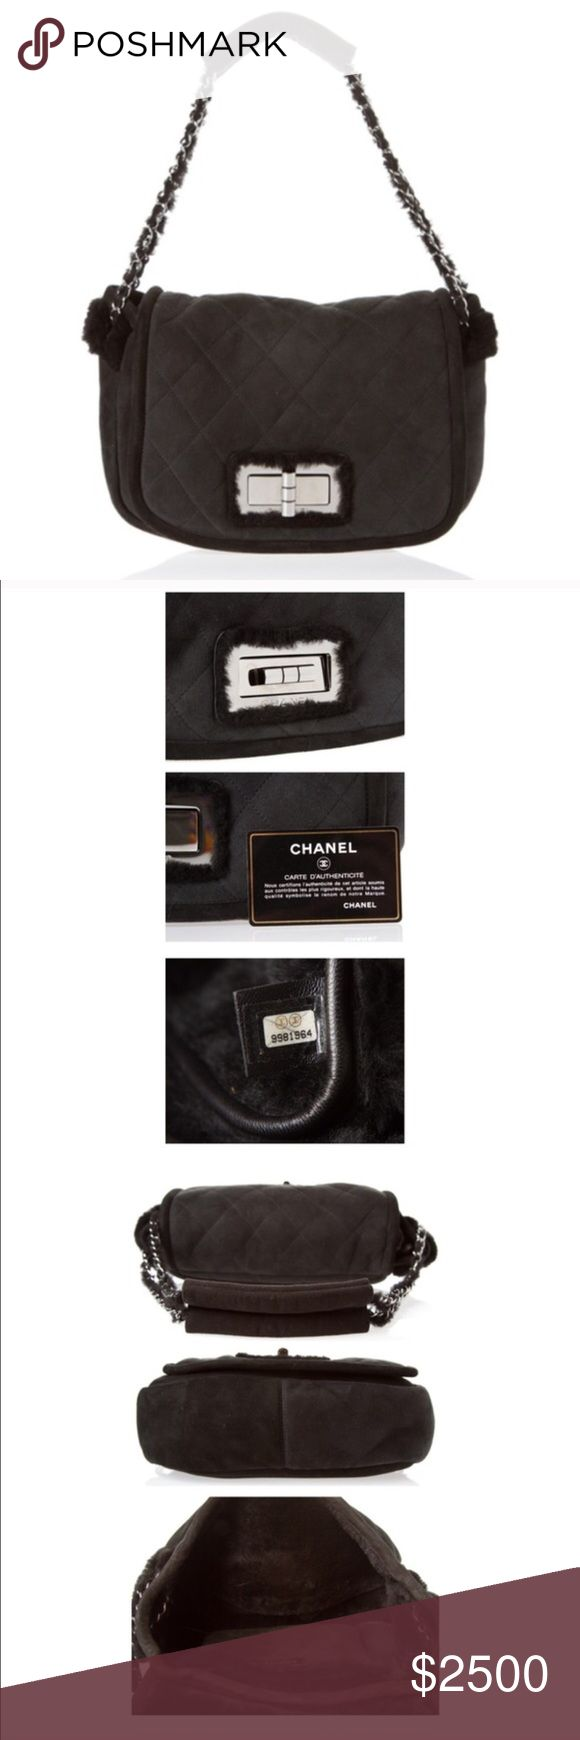 Authentic Chanel bag See description above.  Does not include dustbag or box.  Poshmark will authenticate. CHANEL Bags Shoulder Bags